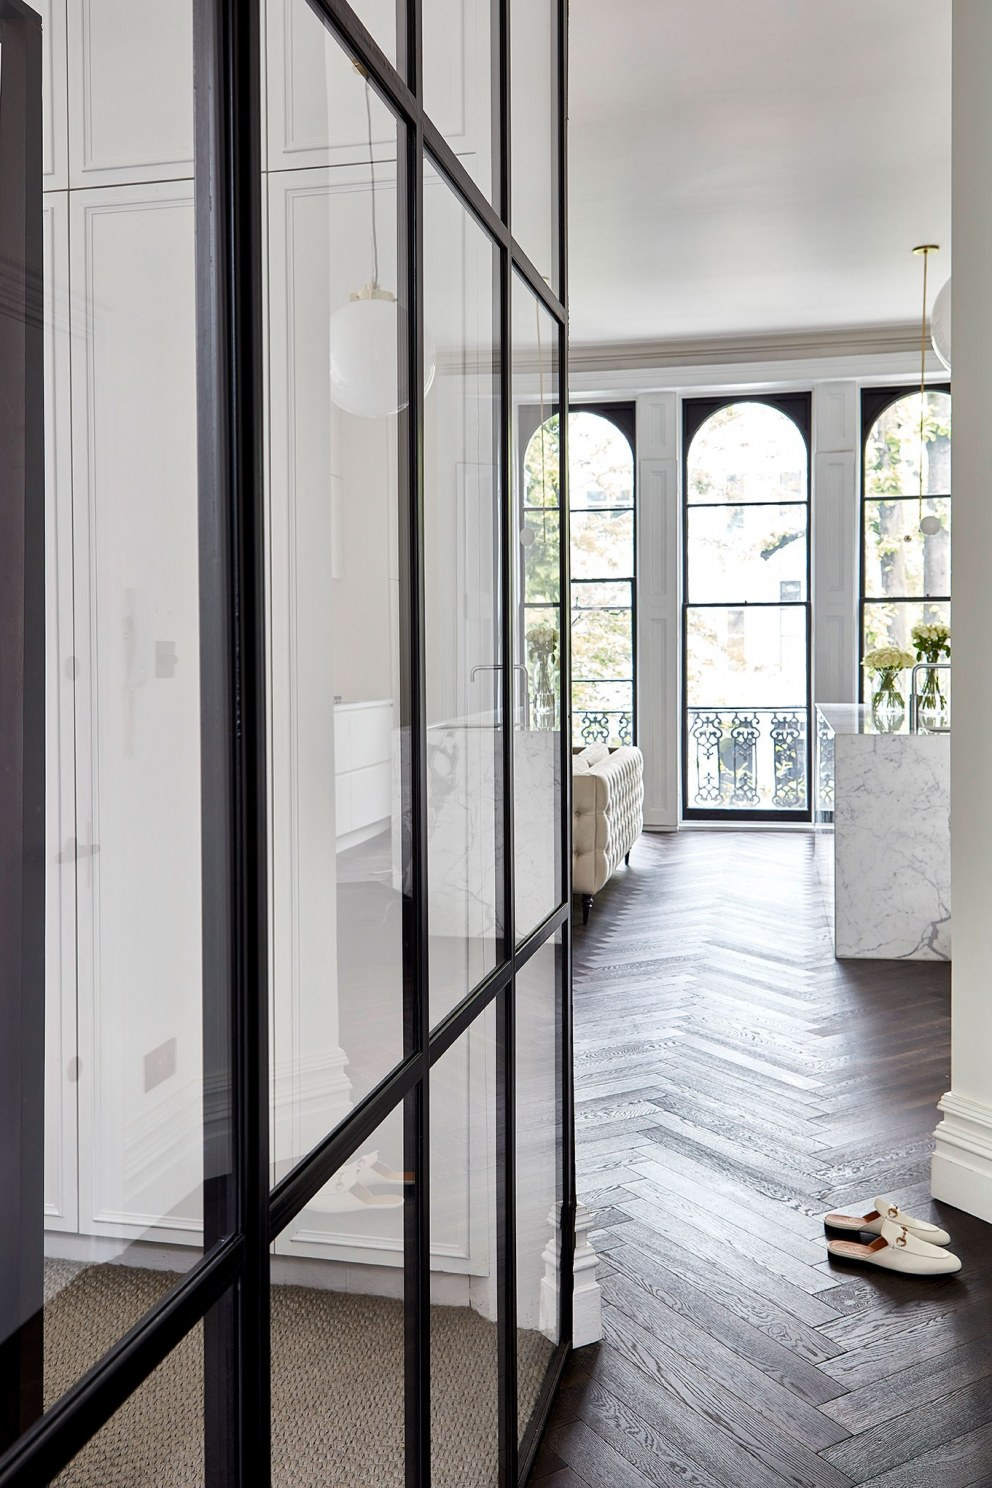 Notting Hill home | Hallway  | Interior Designers